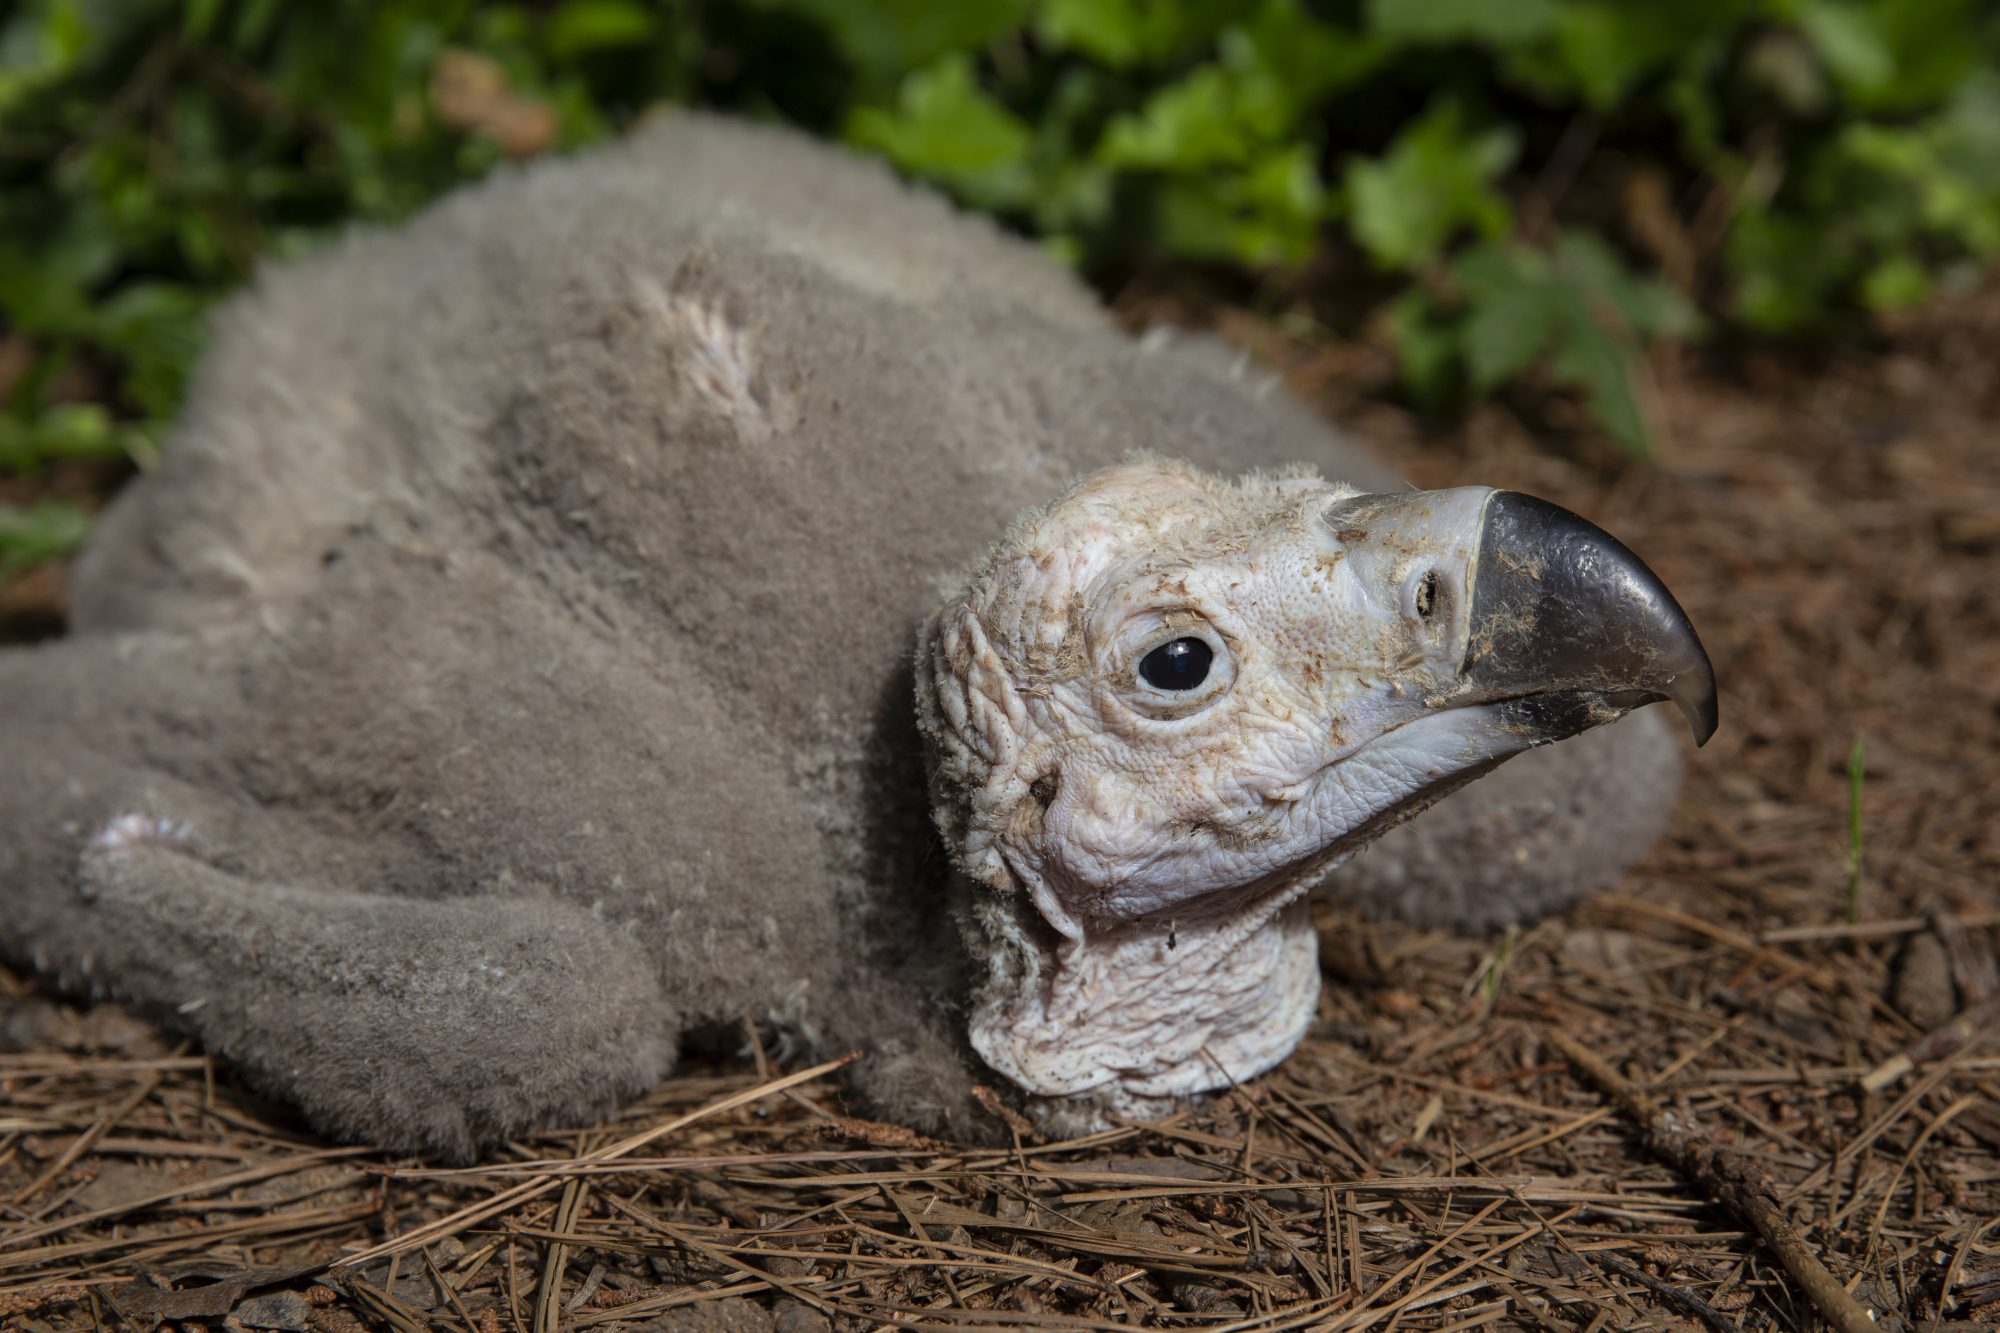 ZOO ATLANTA ANNOUNCES ITS FIRST-EVER HATCHING OF A LAPPET-FACED VULTURE CHICK